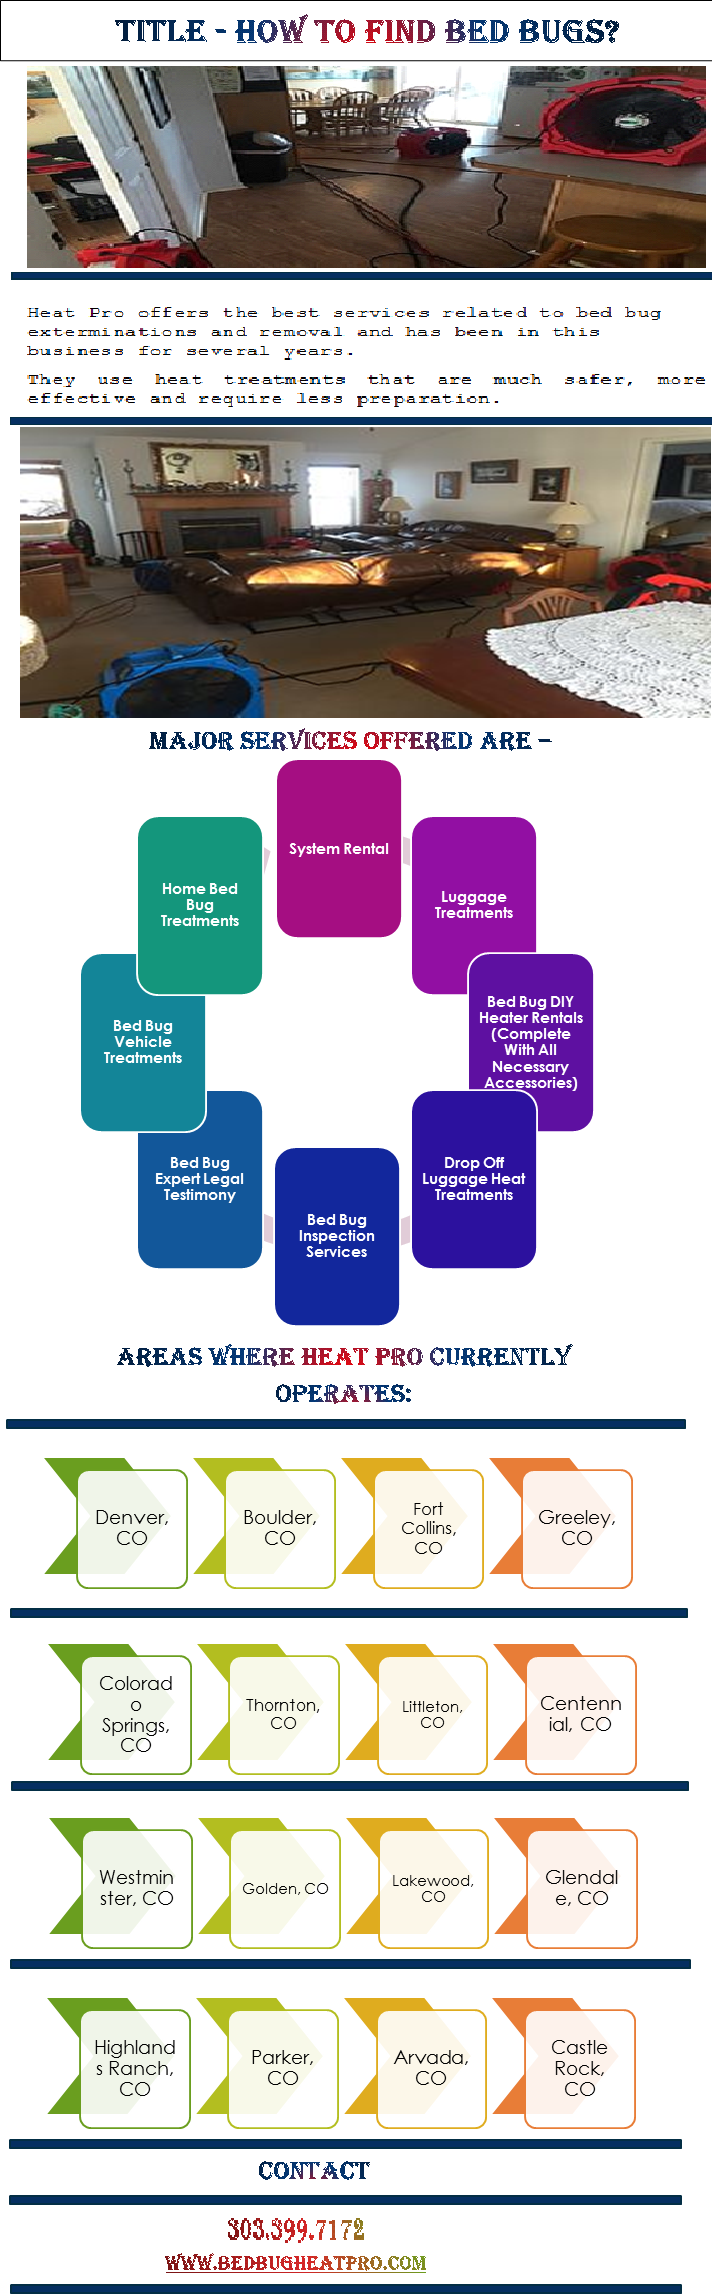 Heat Pro offers the best services related to bed bug